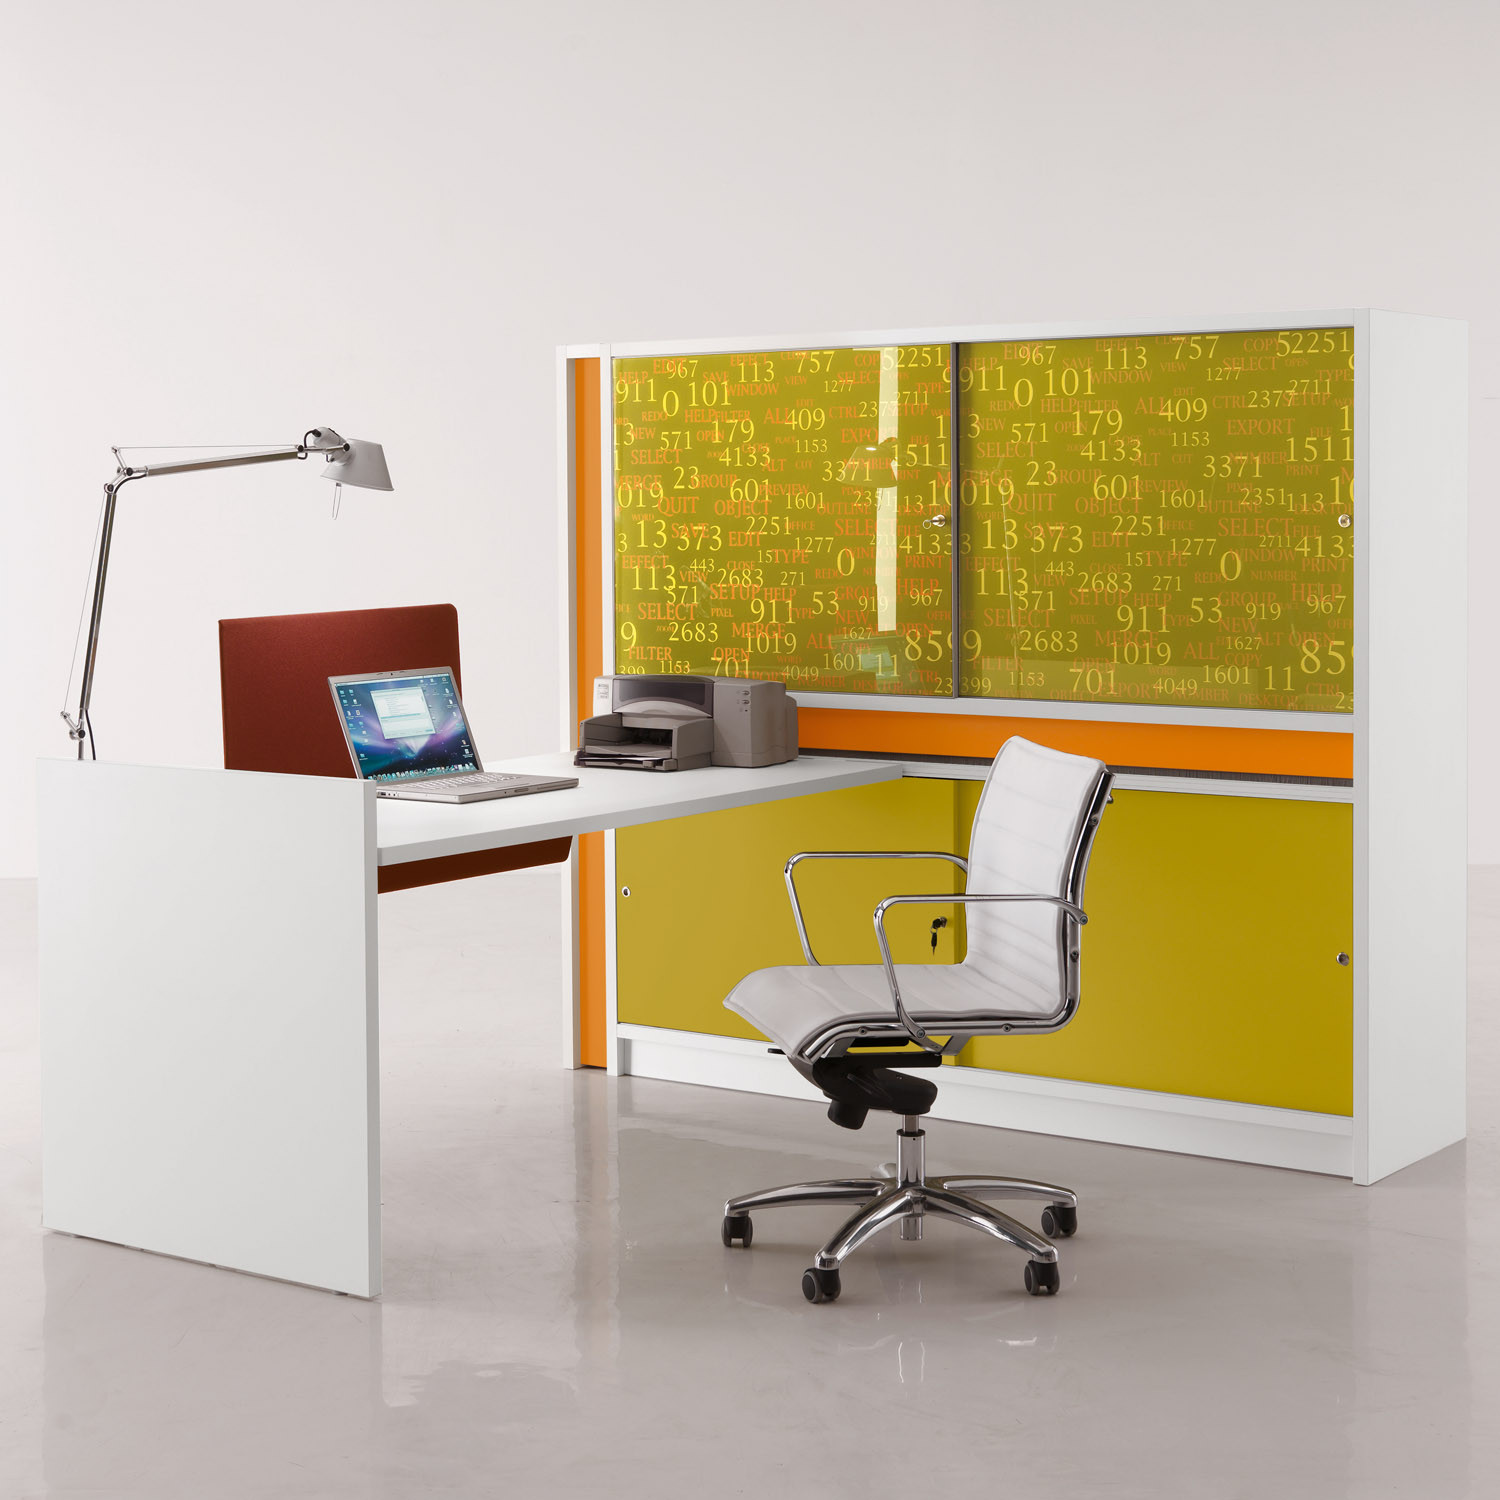 Martex More Desk and Storage